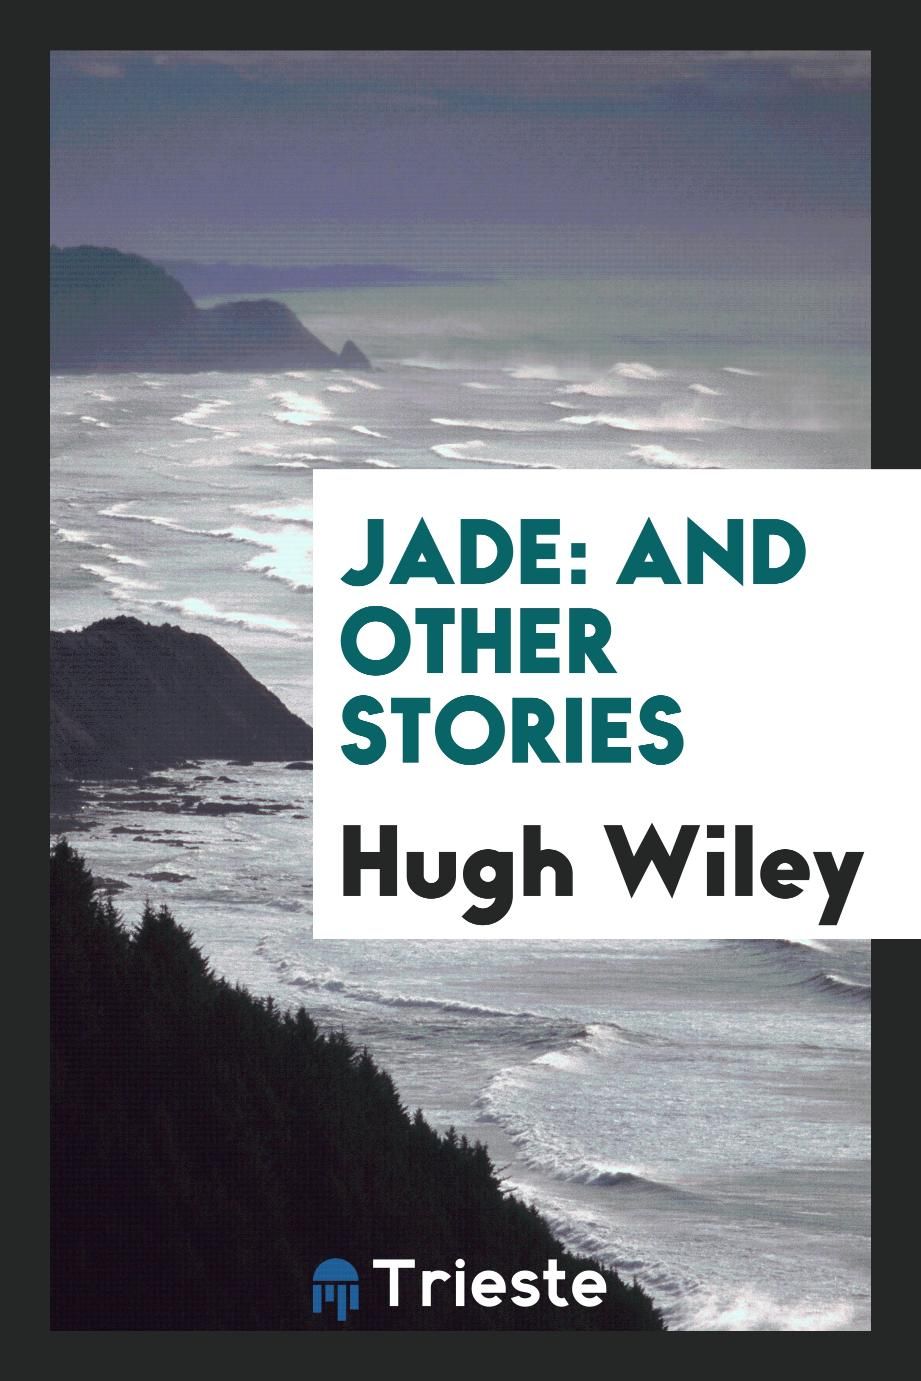 Jade: and other stories